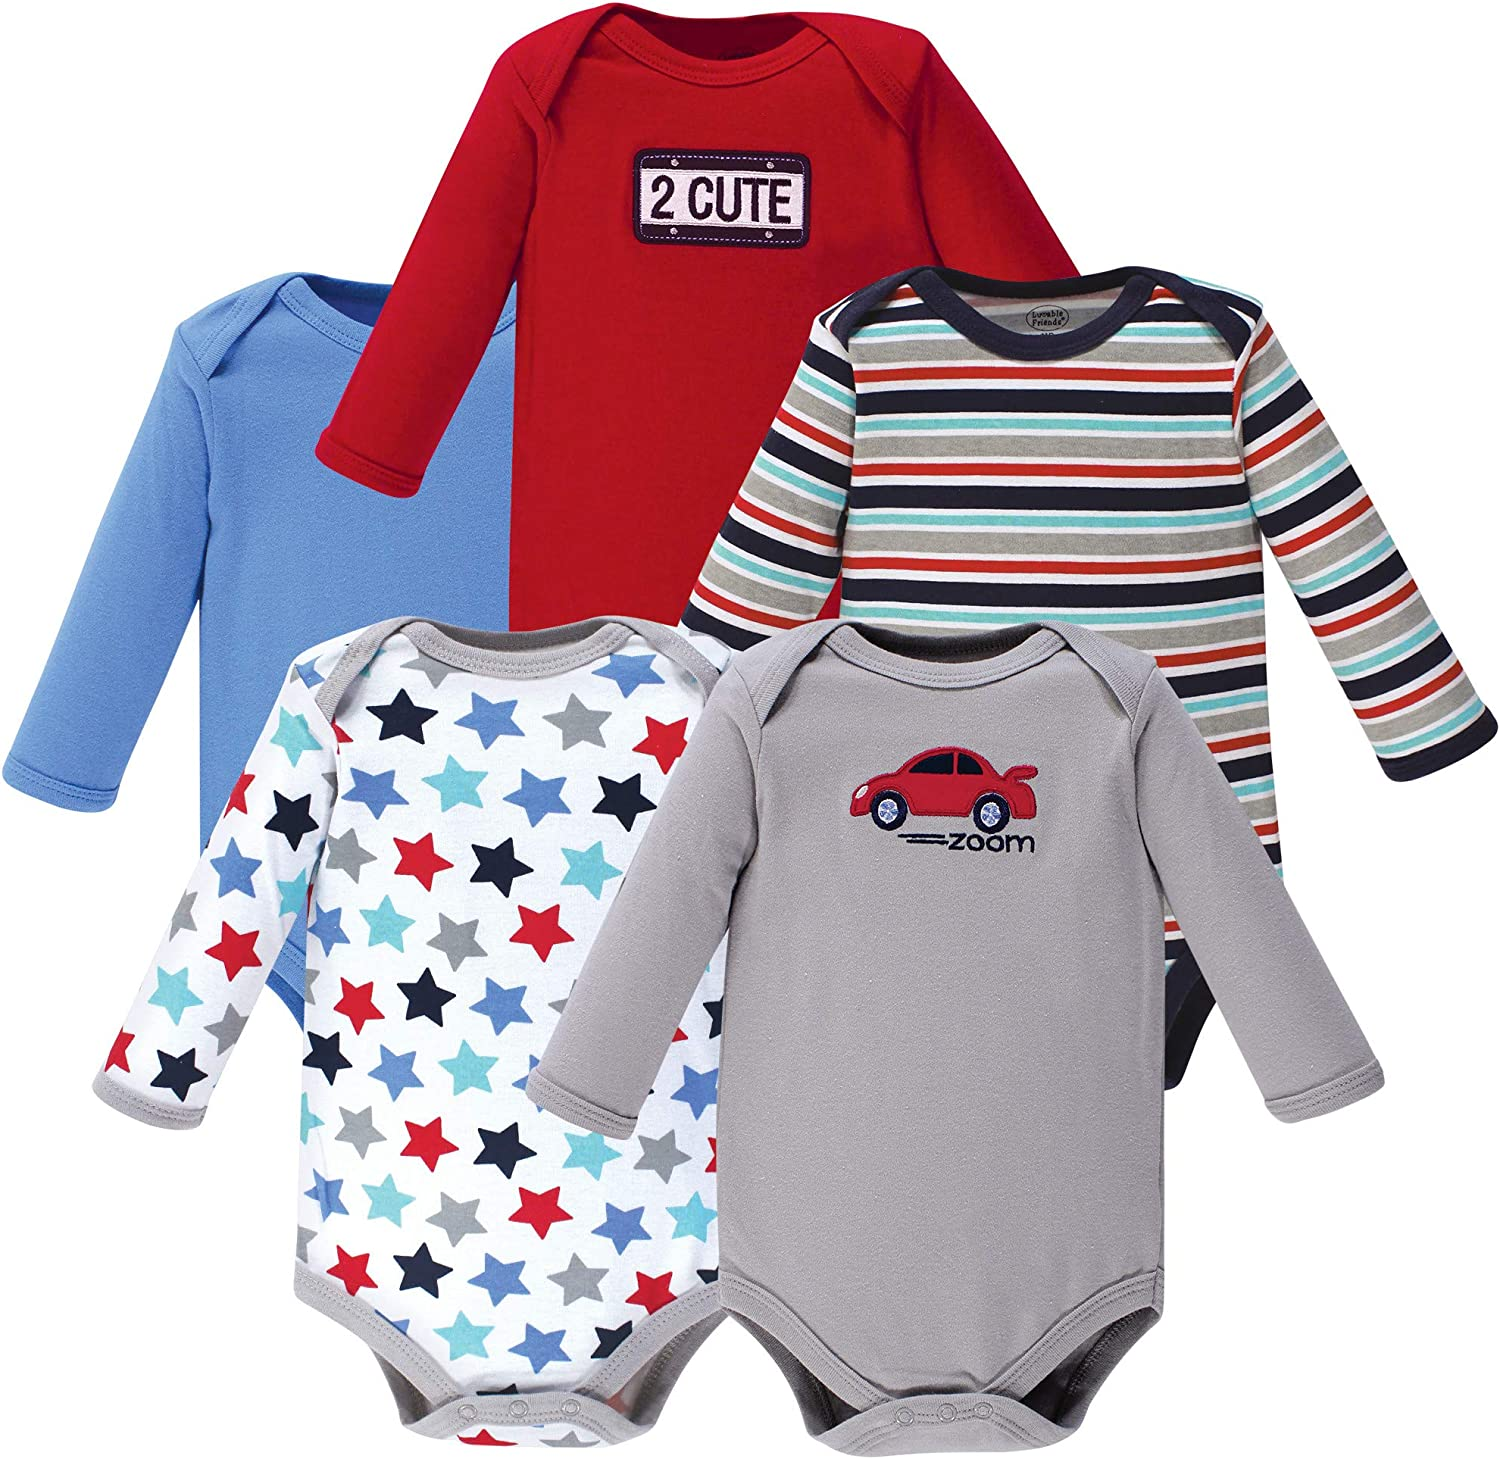 Pack of 5 Luvable Friends Baby Boys Long Sleeve Bodysuits